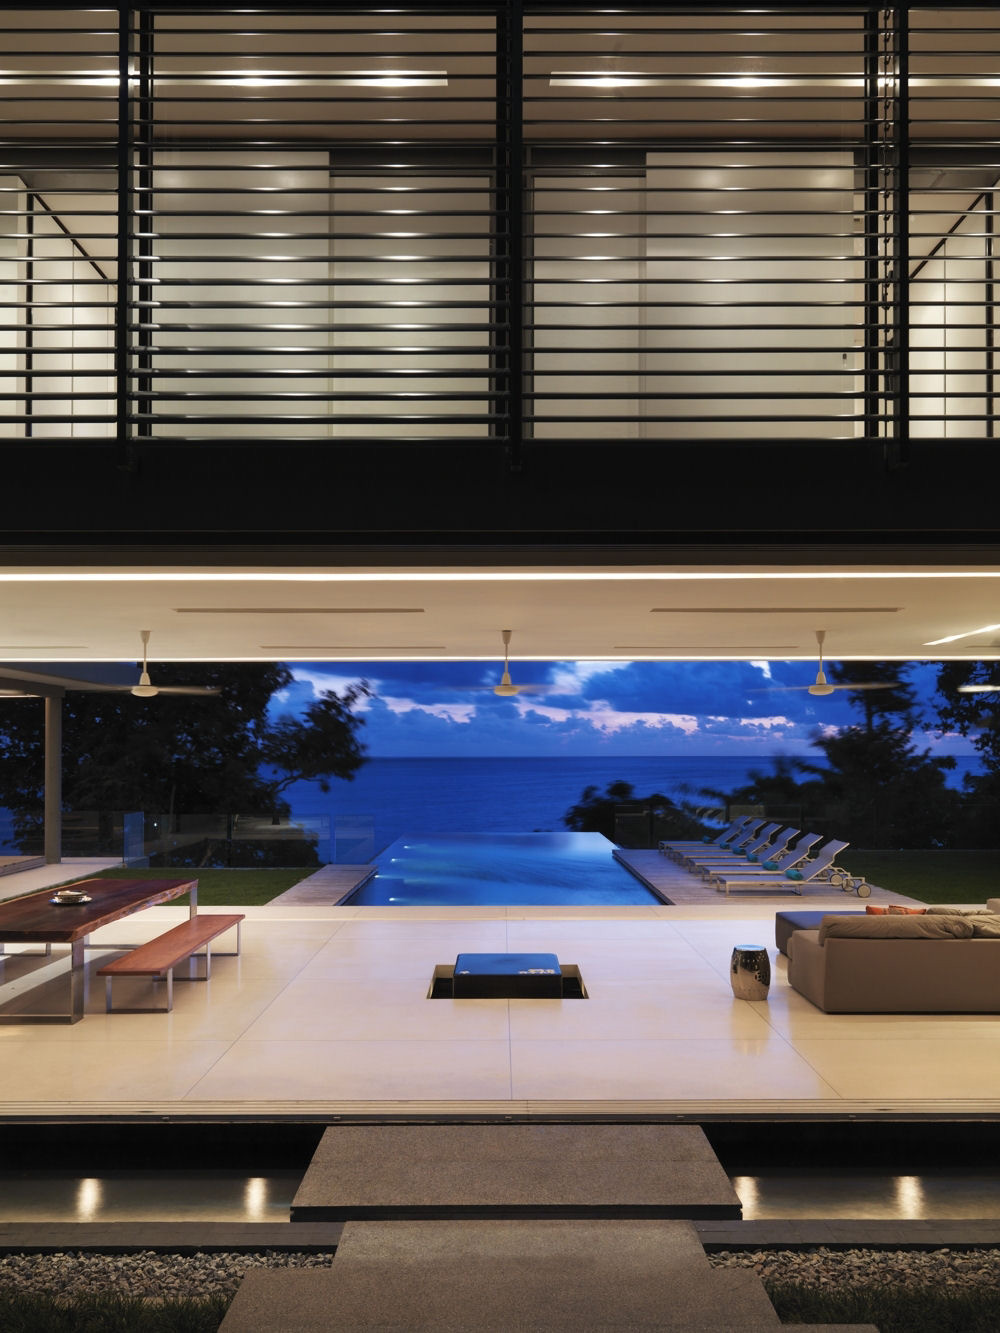 House on the Rocks – Villa Amanzi, Phuket, Thailand